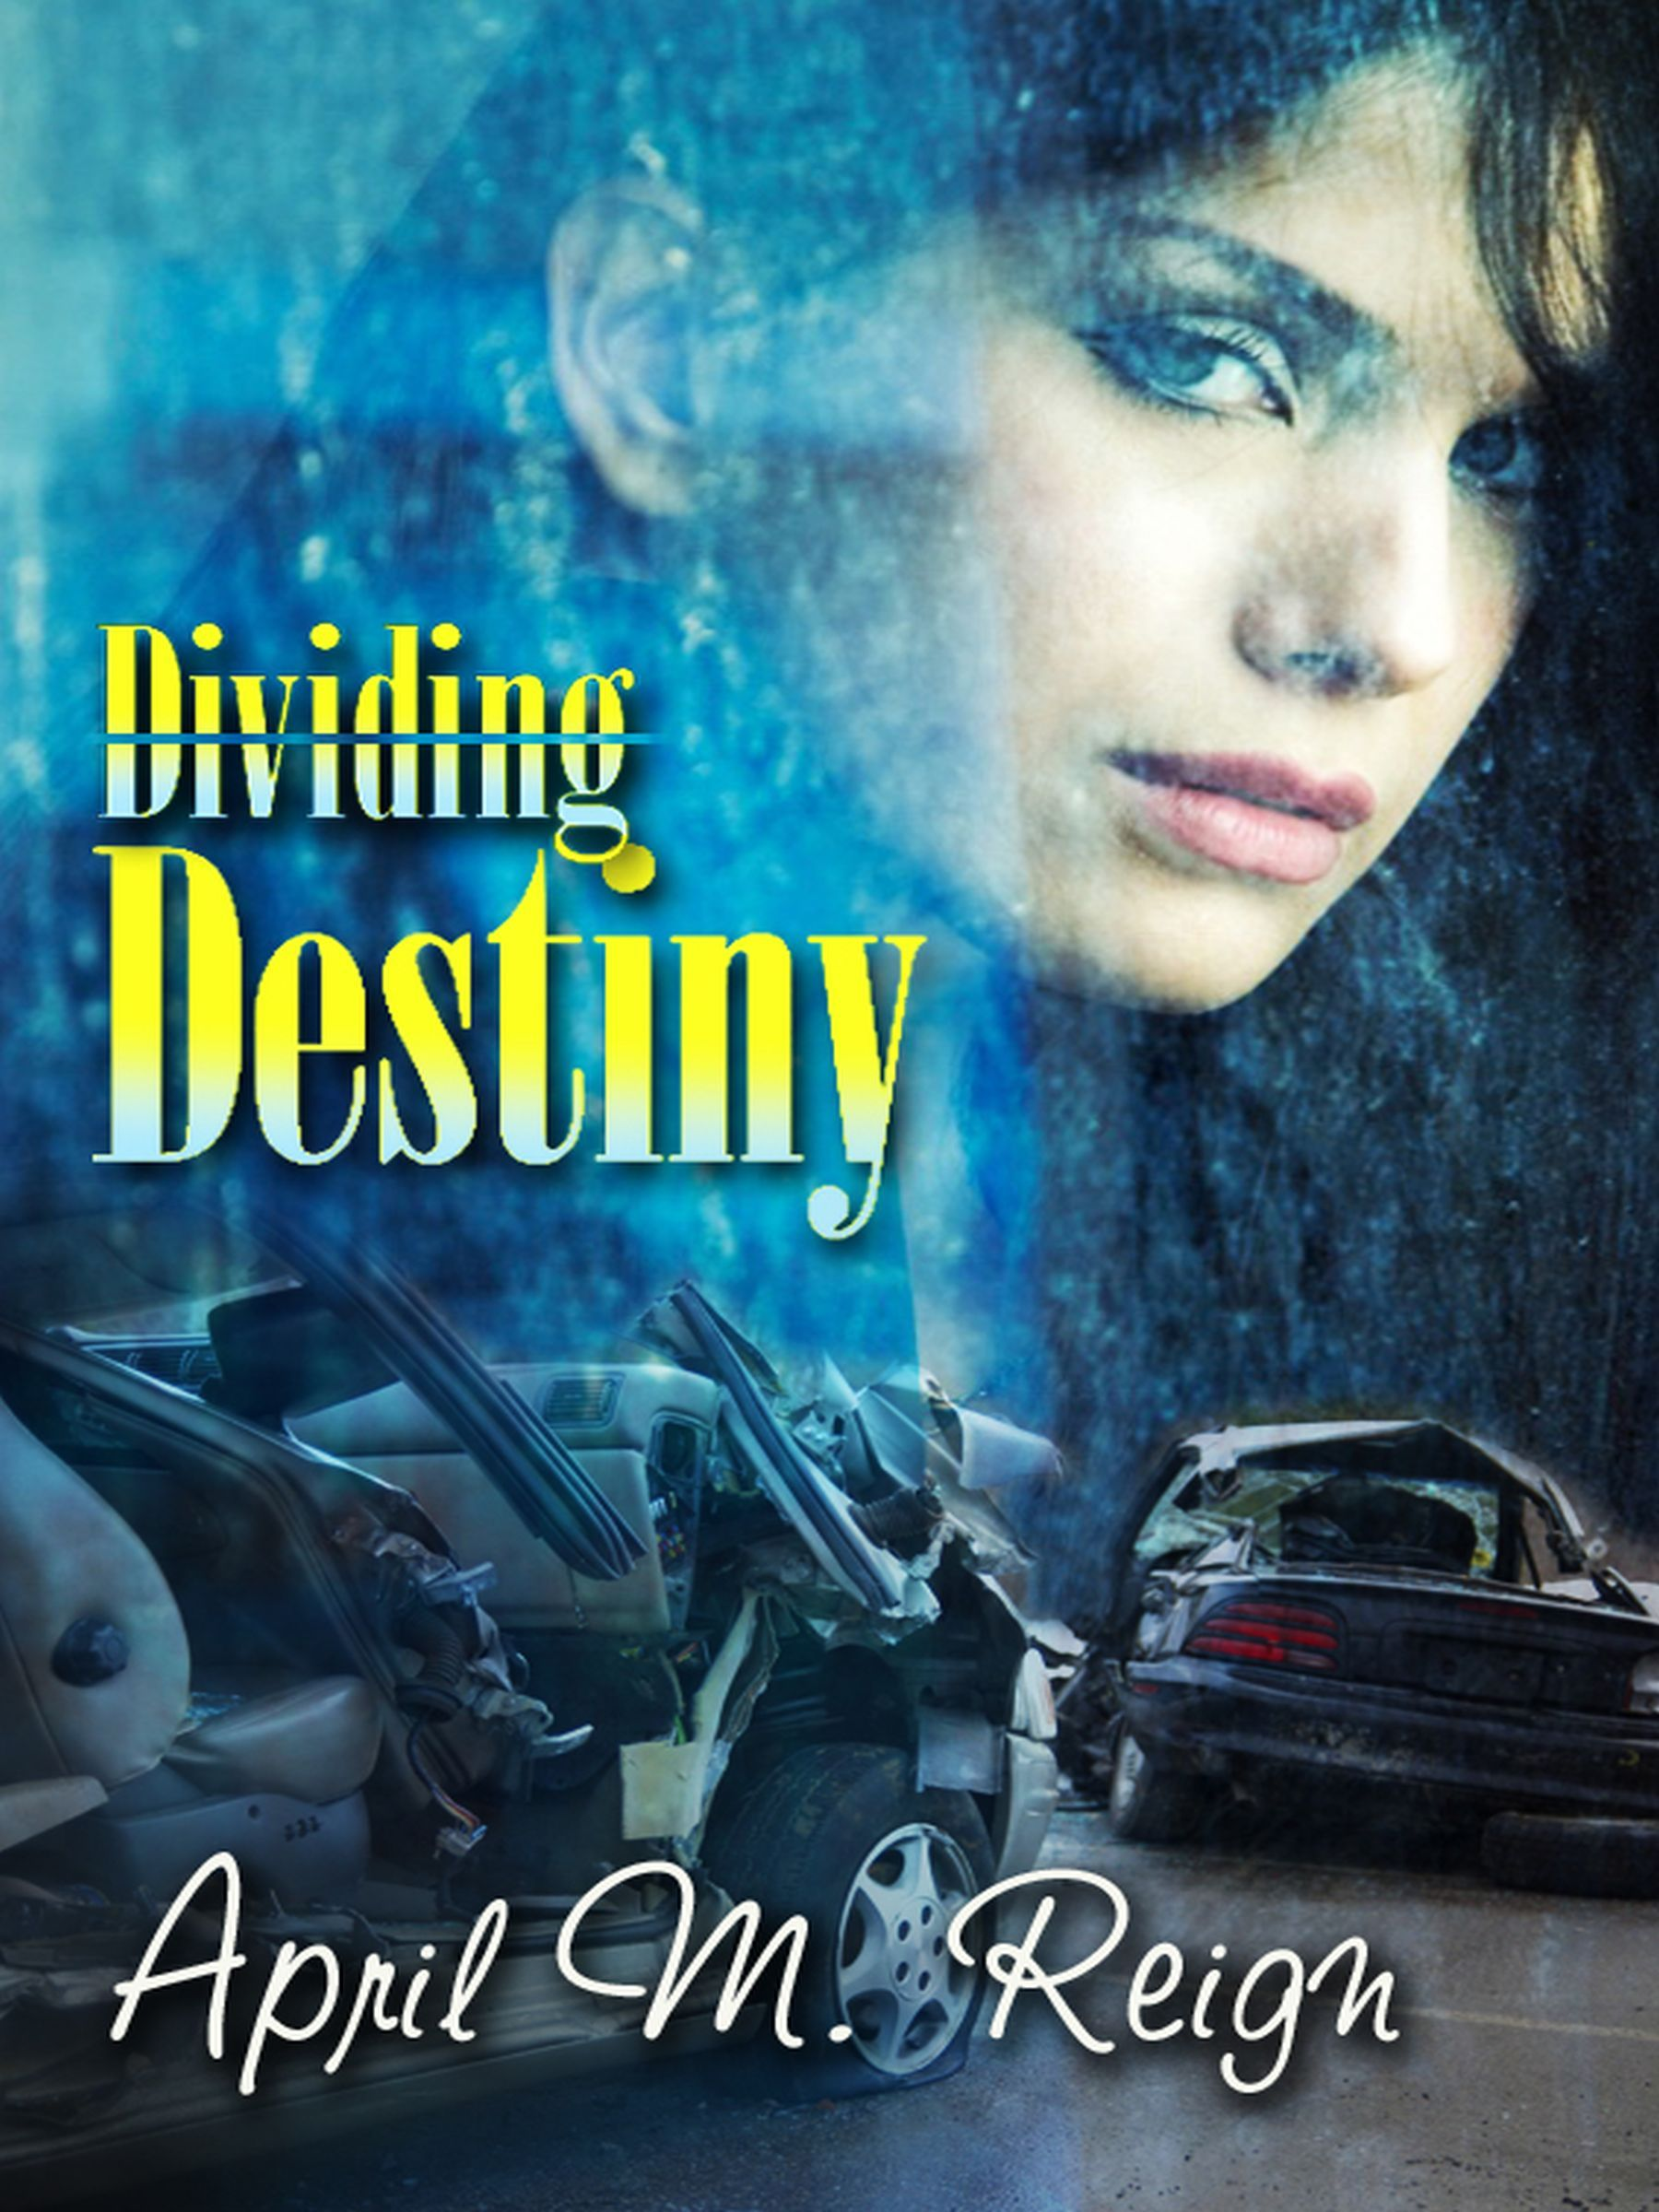 Private investigator Destiny Parks has spent her adult life trying